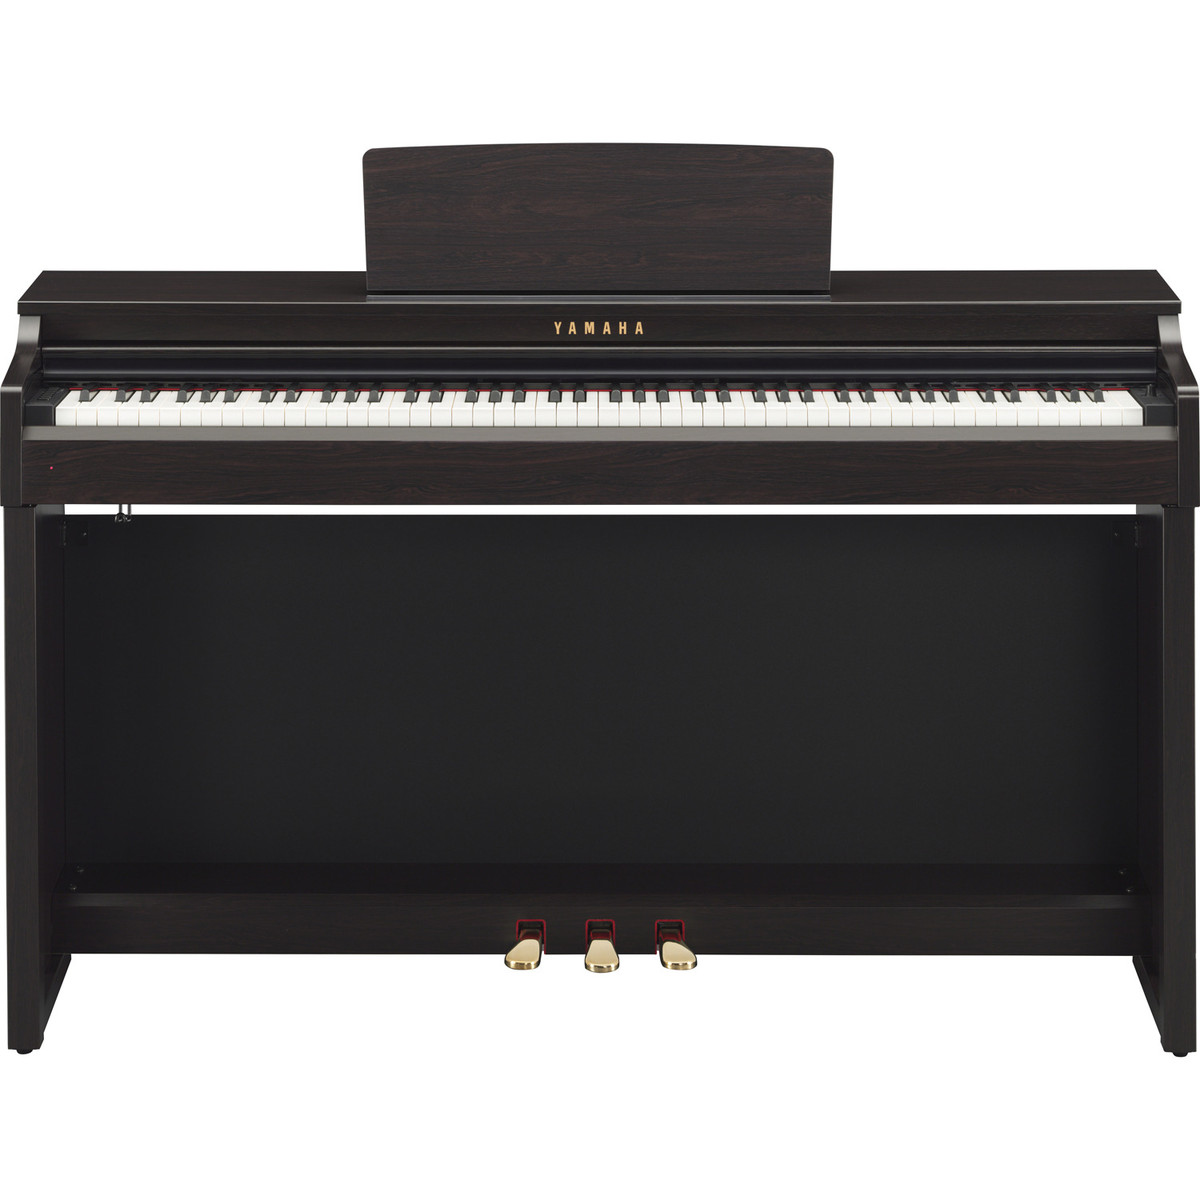 Yamaha clavinova clp525 digital piano rosewood at for Piano yamaha price list